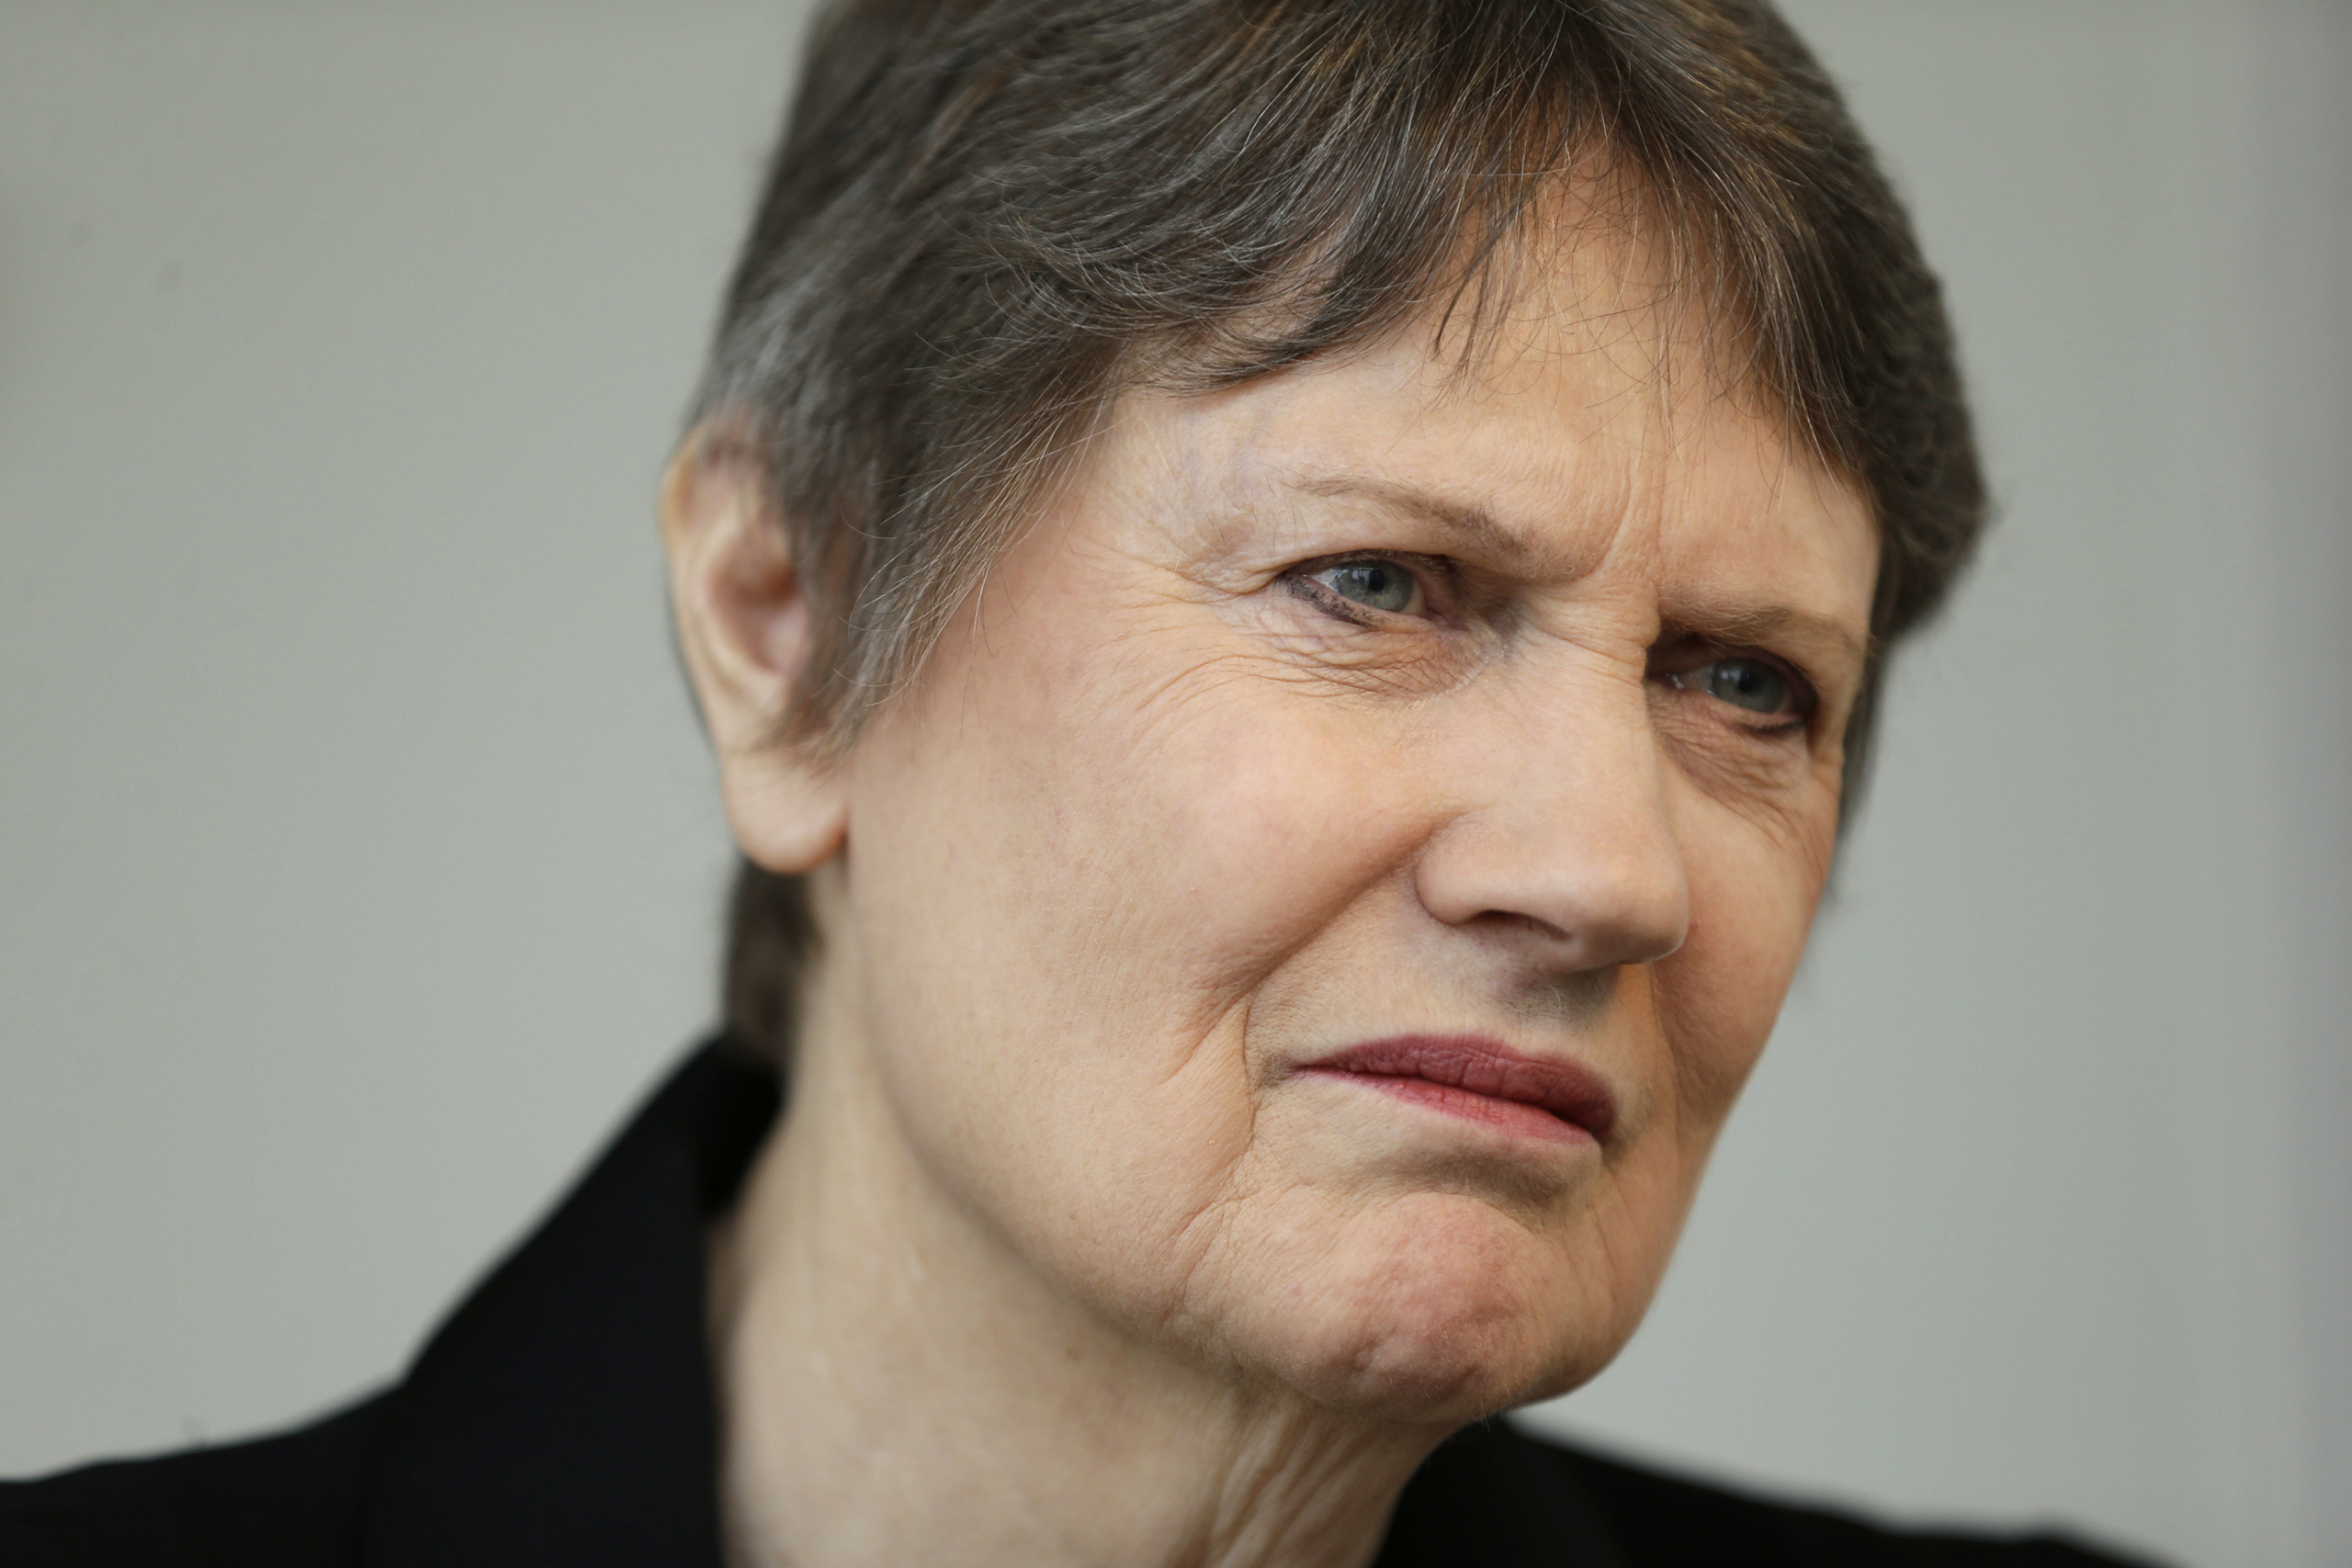 Helen Clark, the former Prime Minister of New Zealand and senior United Nations official, speaks during an interview in New York on April 4, 2016.